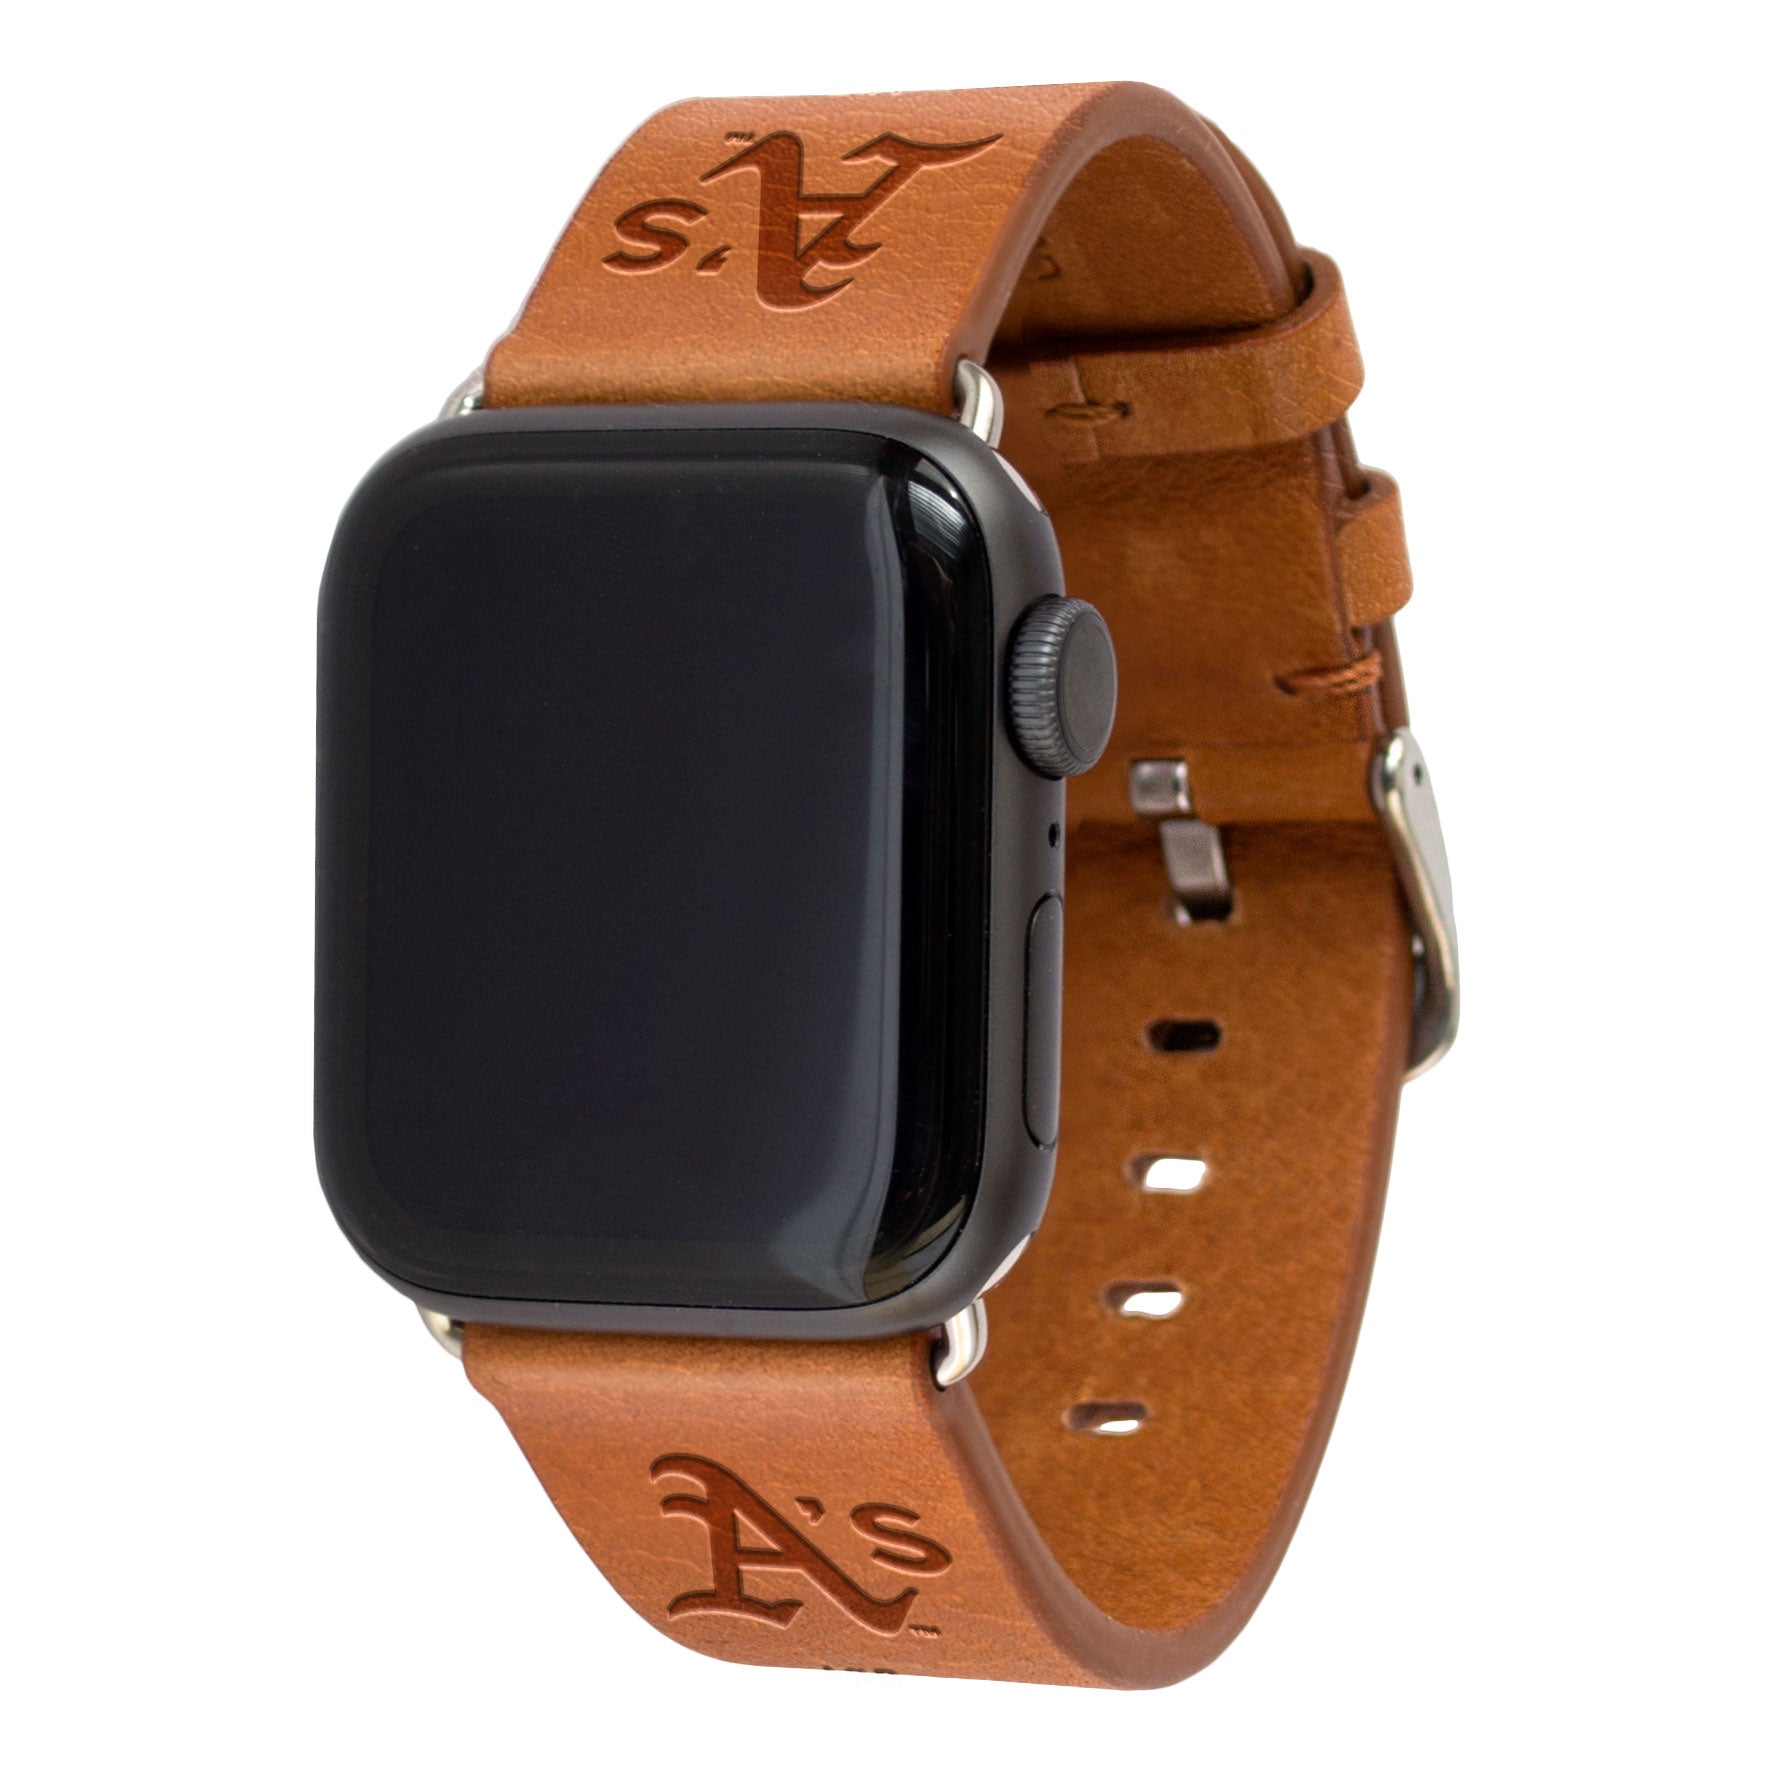 Oakland Athletics Leather Band Compatible With Apple Watch